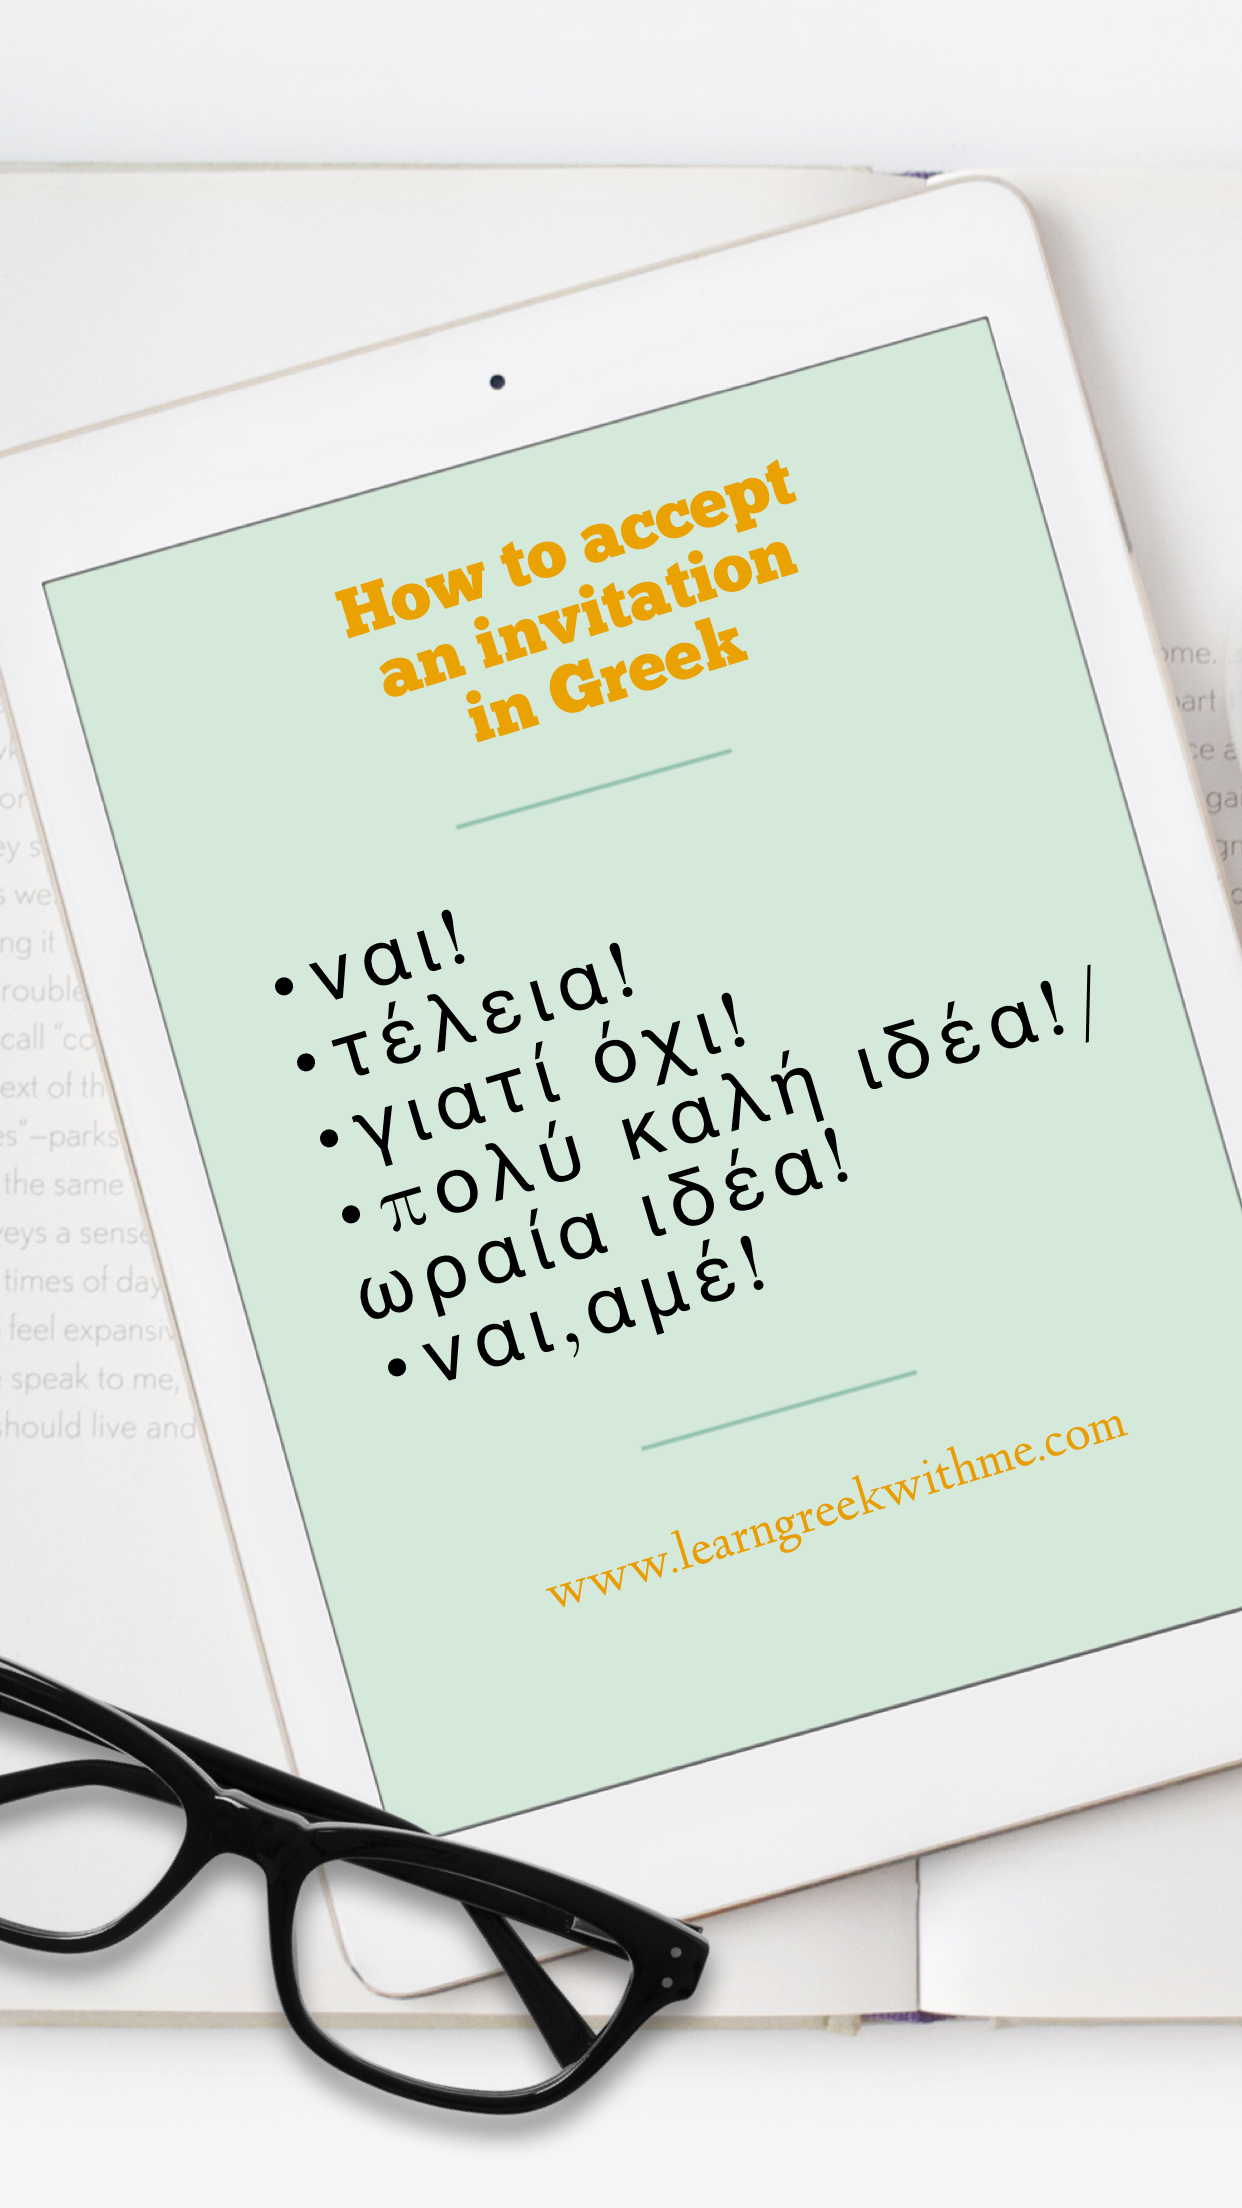 How to accept an invitation in Greek